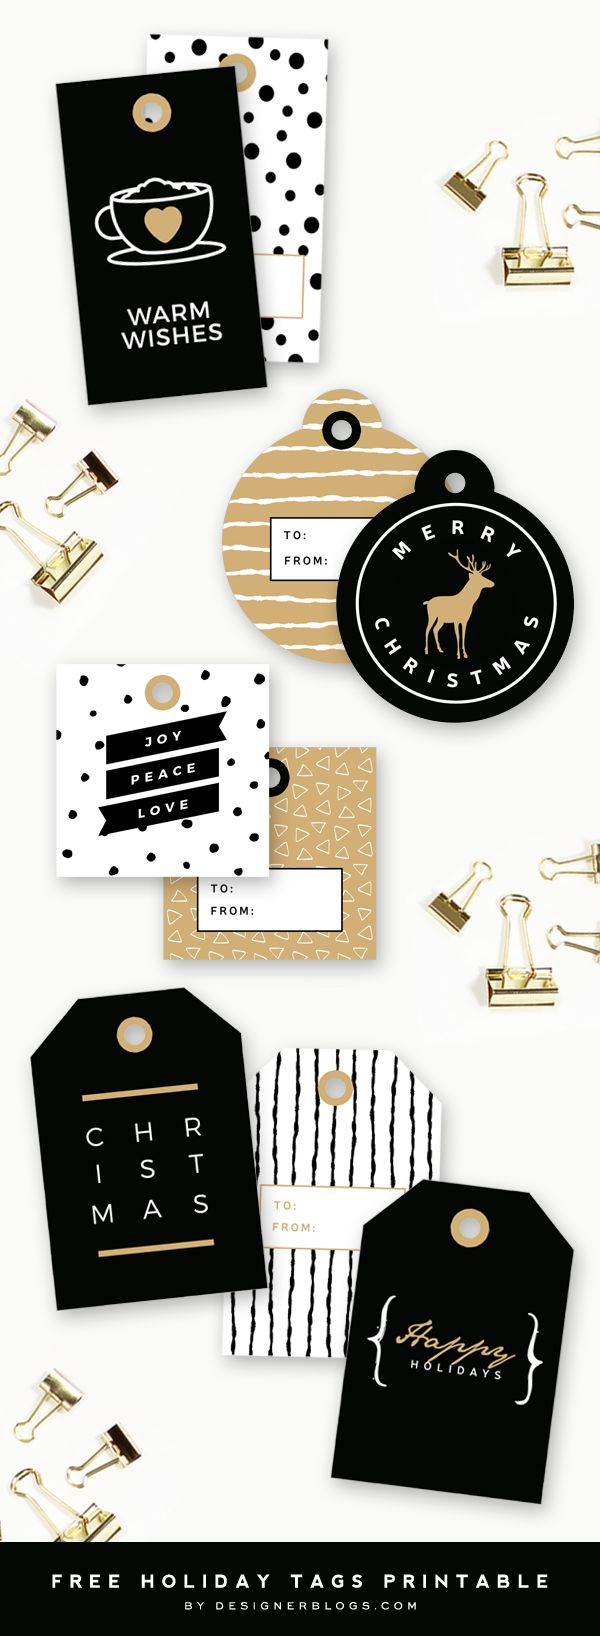 Holiday Gift Tags Printable | Christmas Gift Tags - Designer Blogs